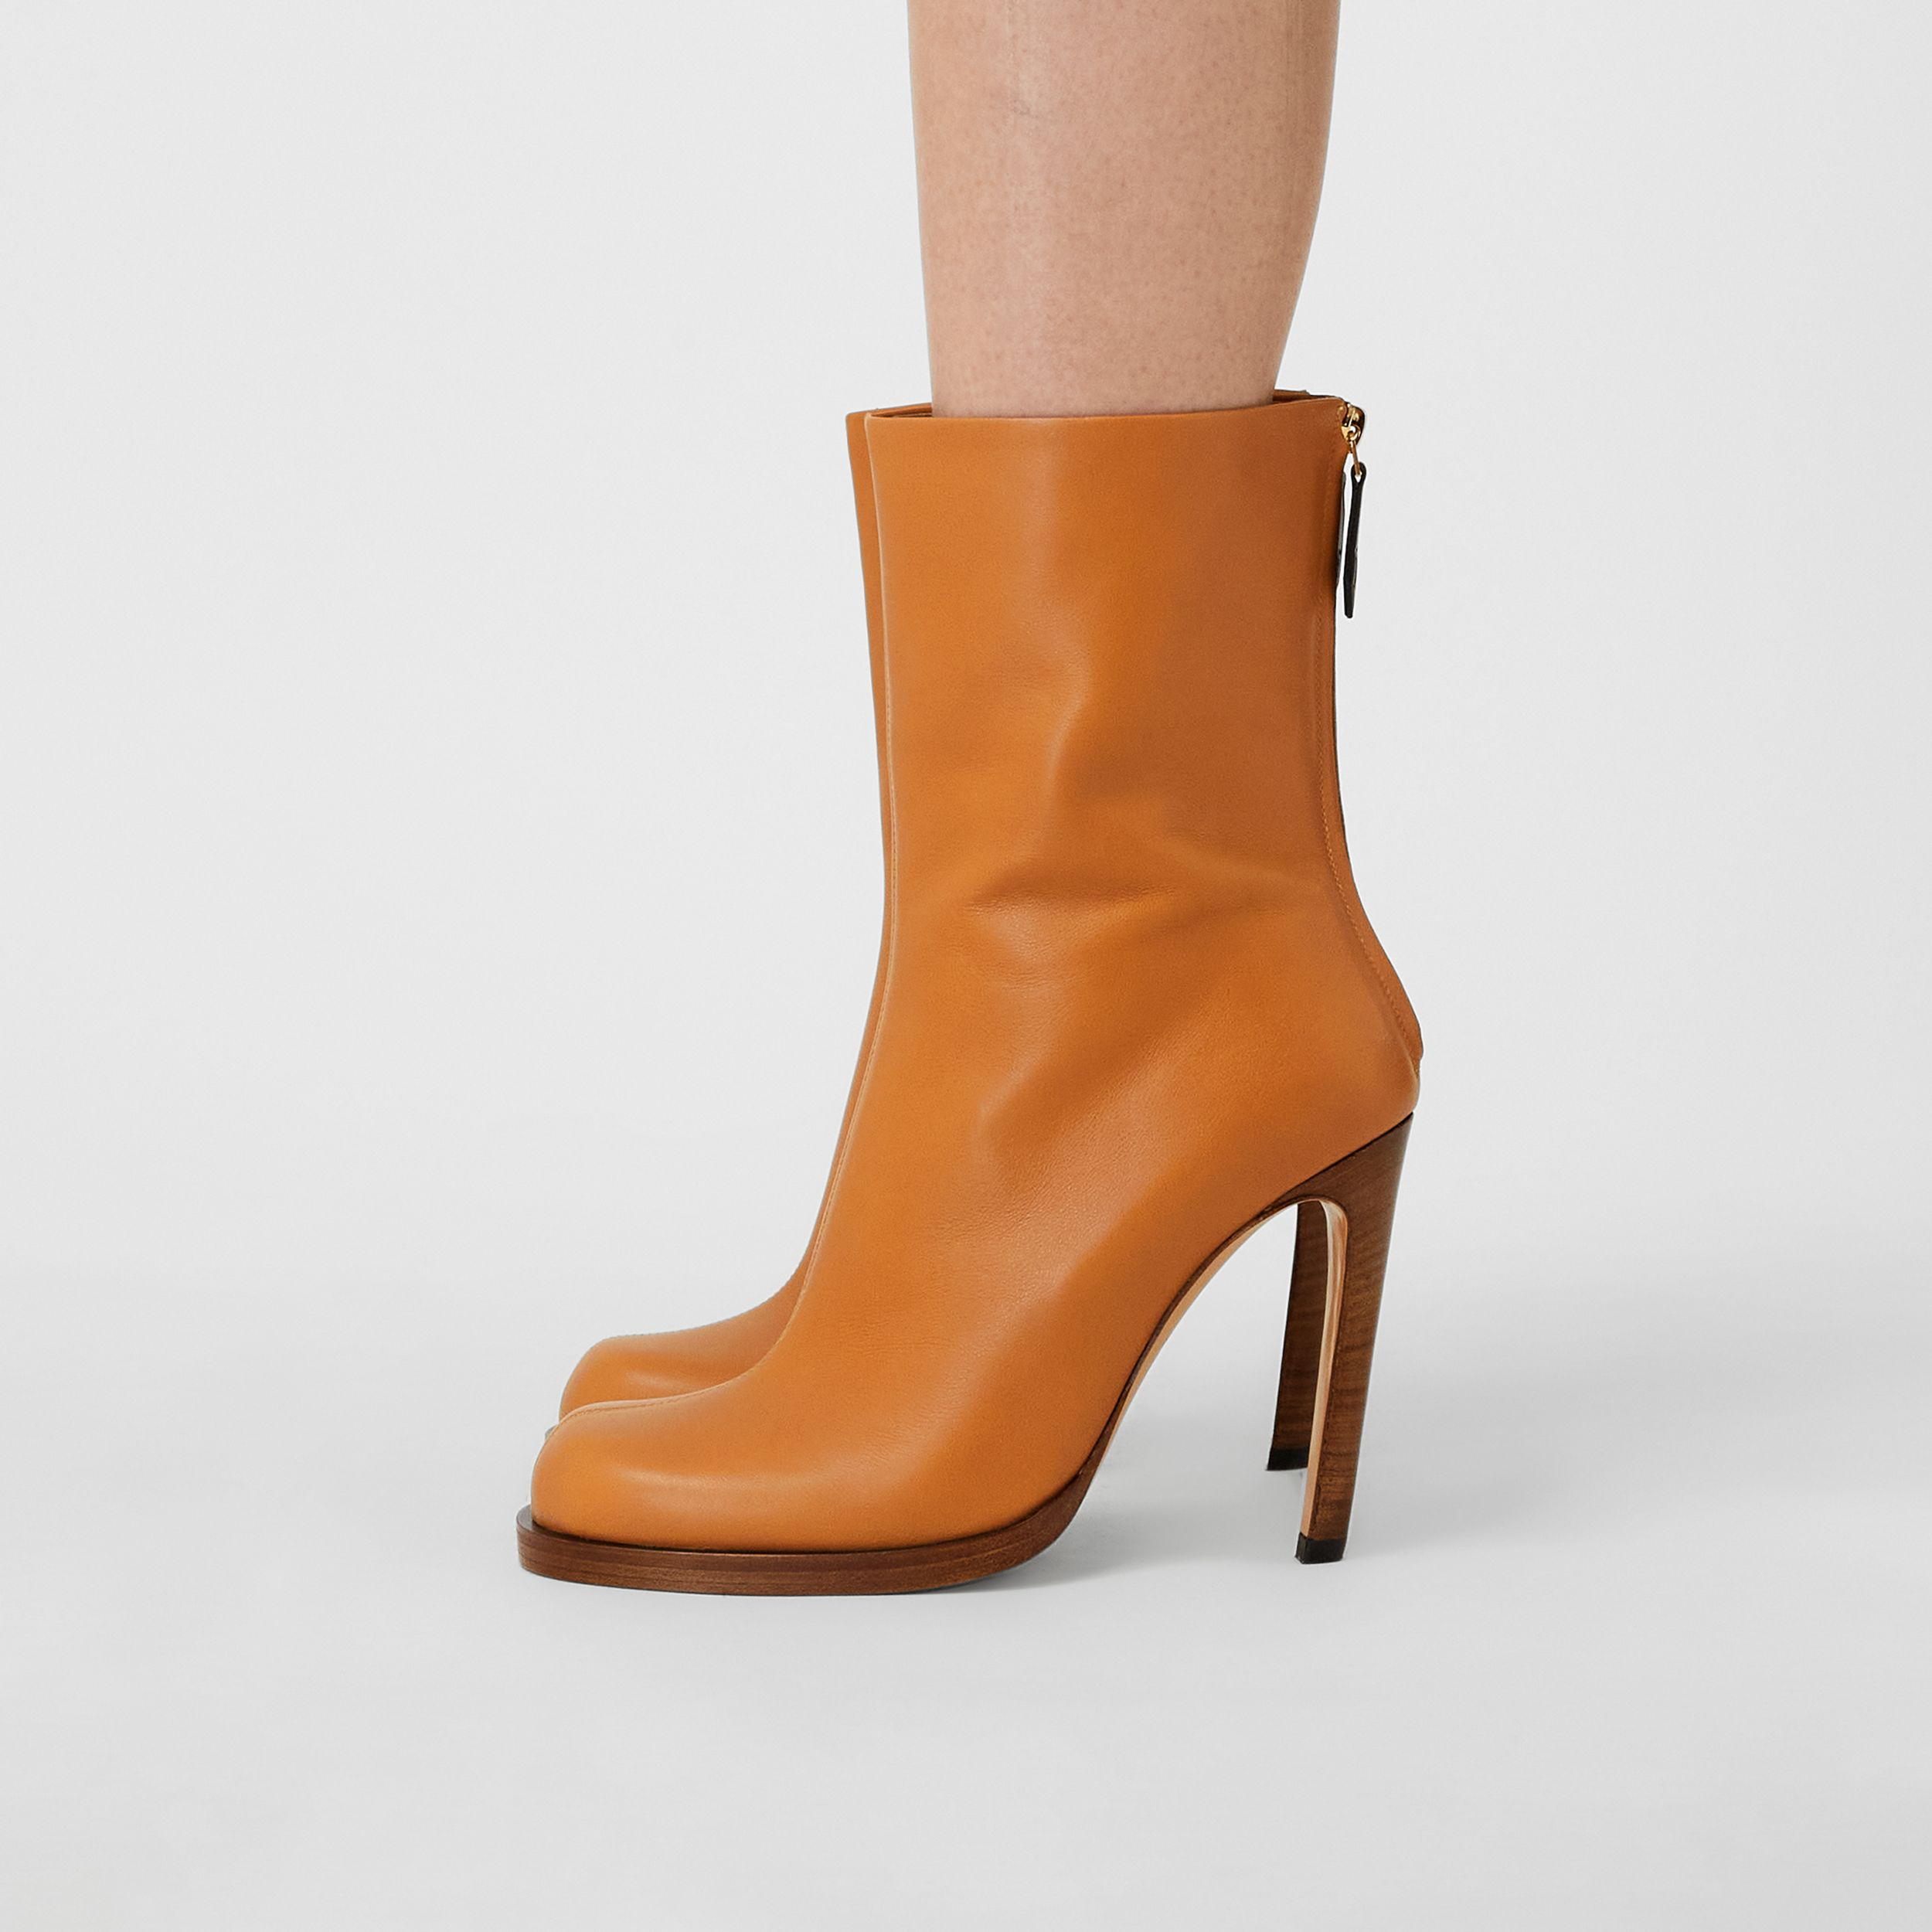 Vintage Check-lined Leather Ankle Boots in Ochre - Women | Burberry - 4